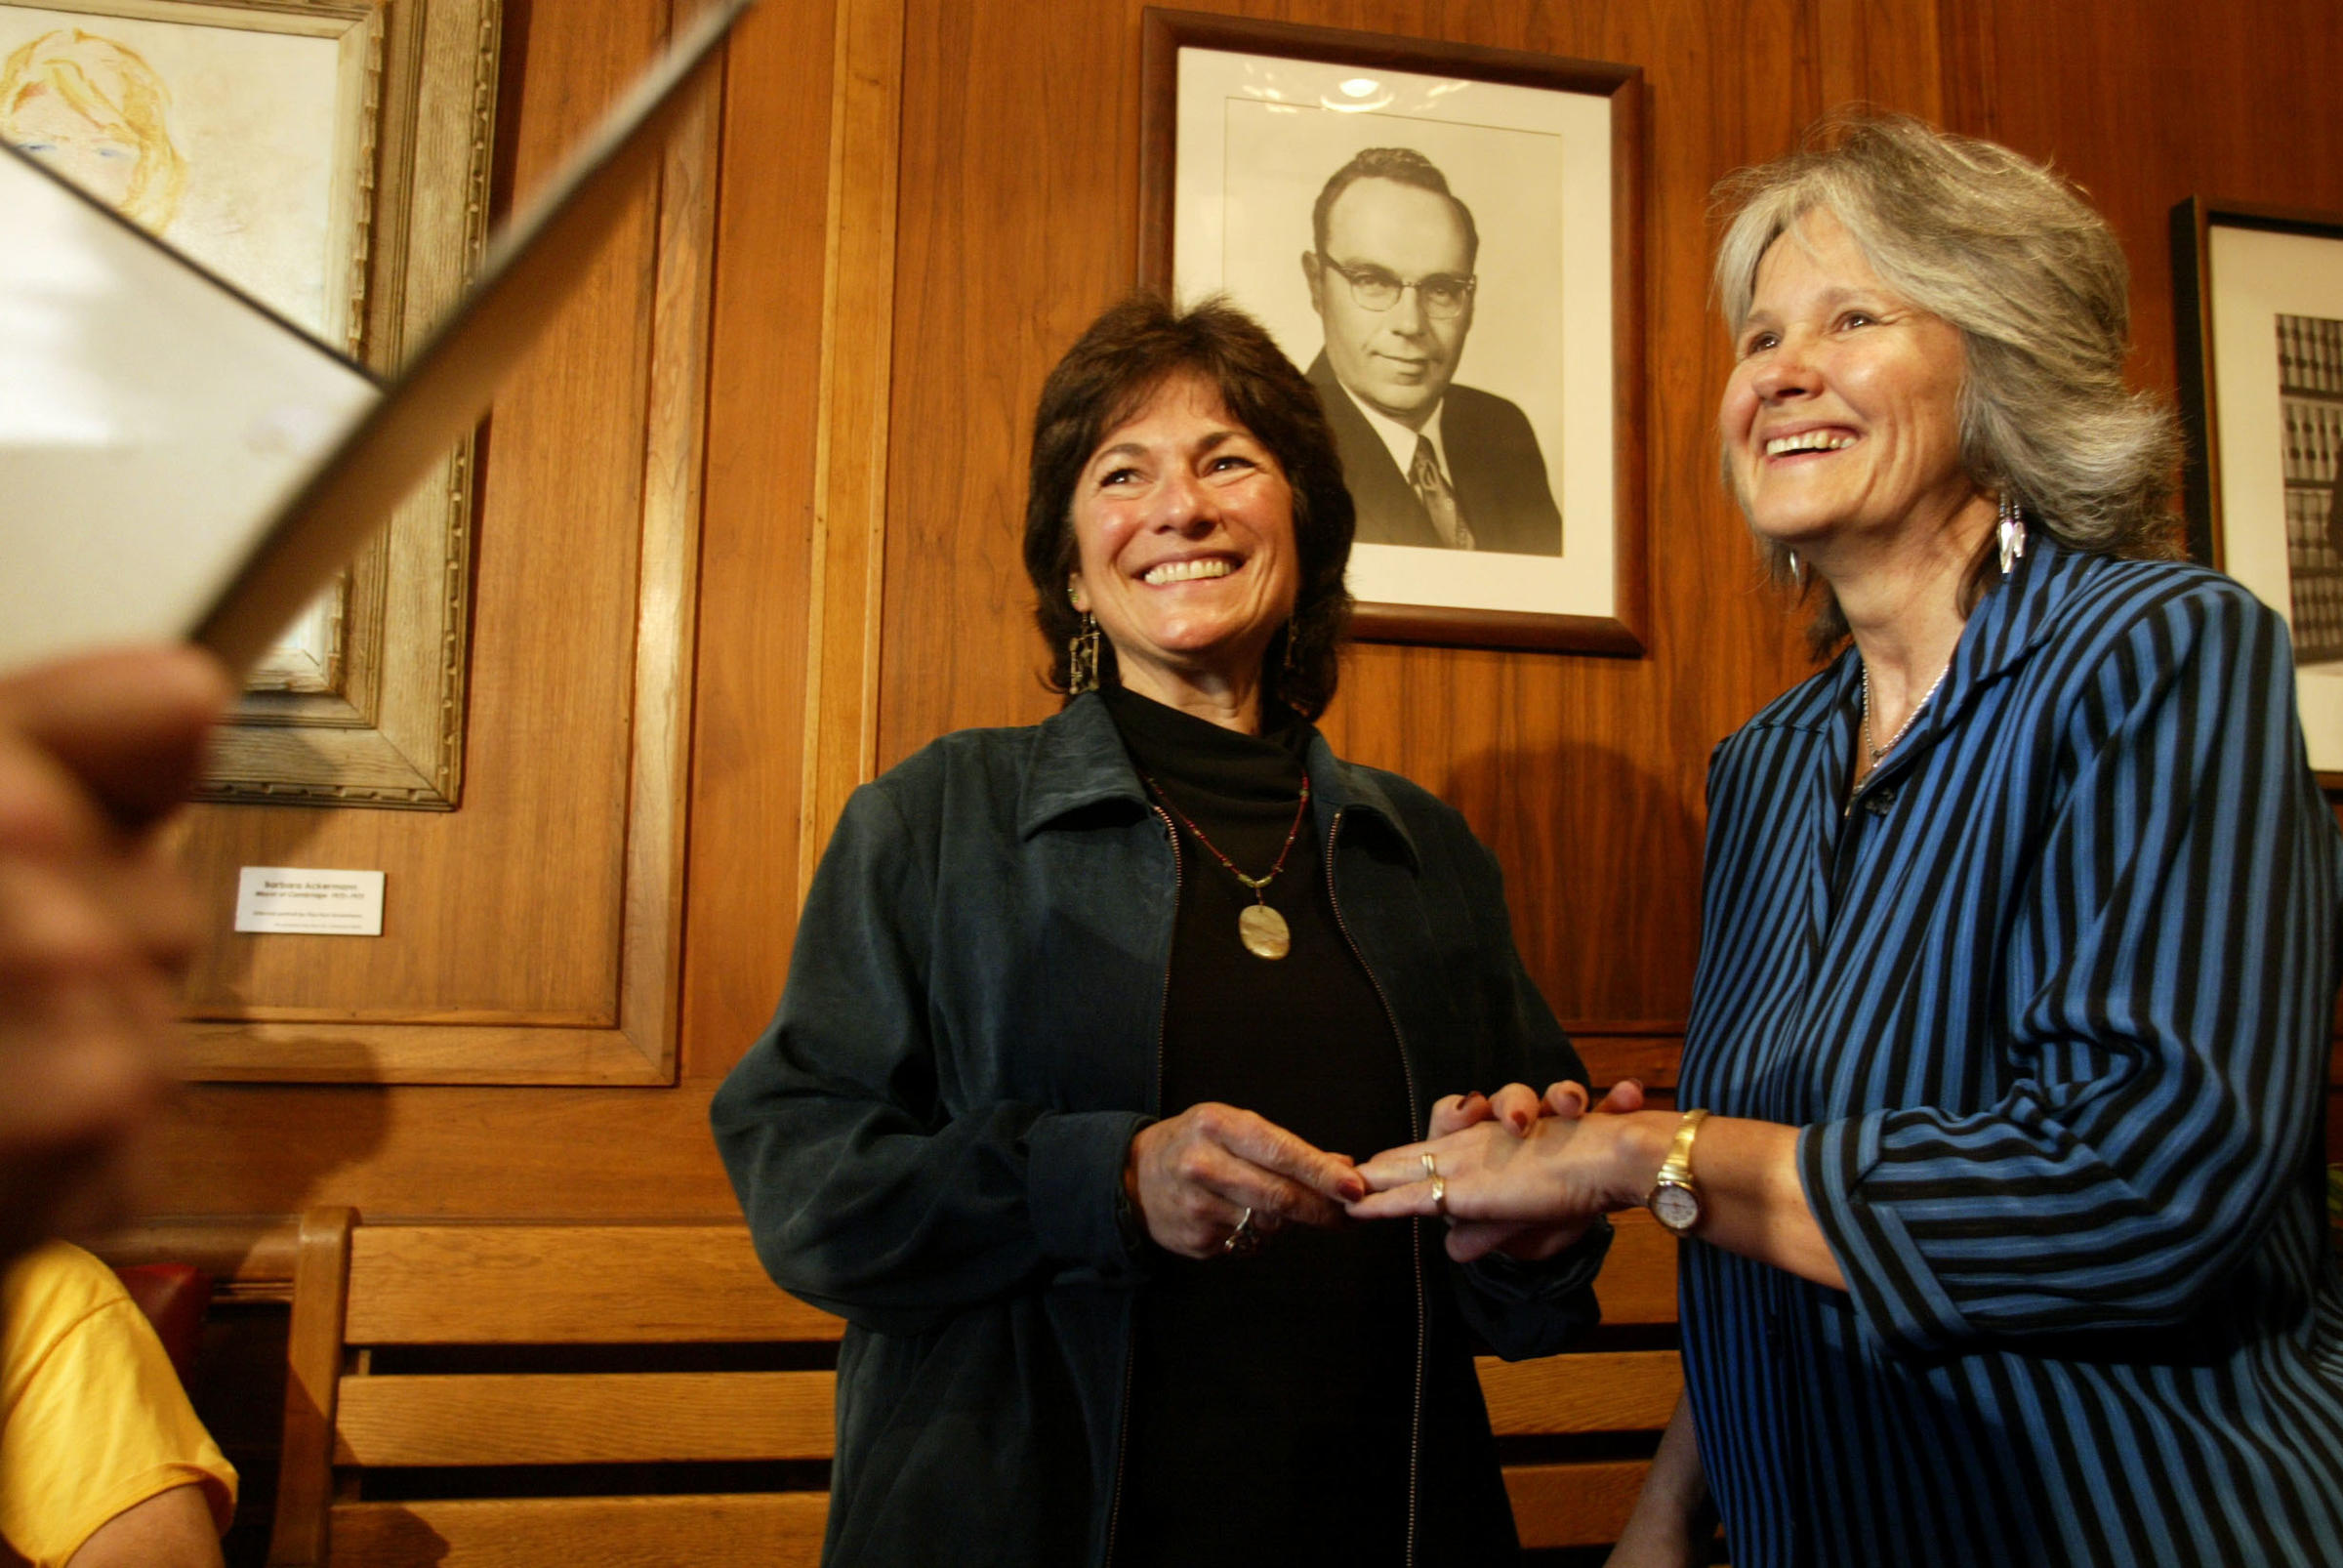 The 1st Legally Married Same-Sex Couple 'Wanted To Lead By